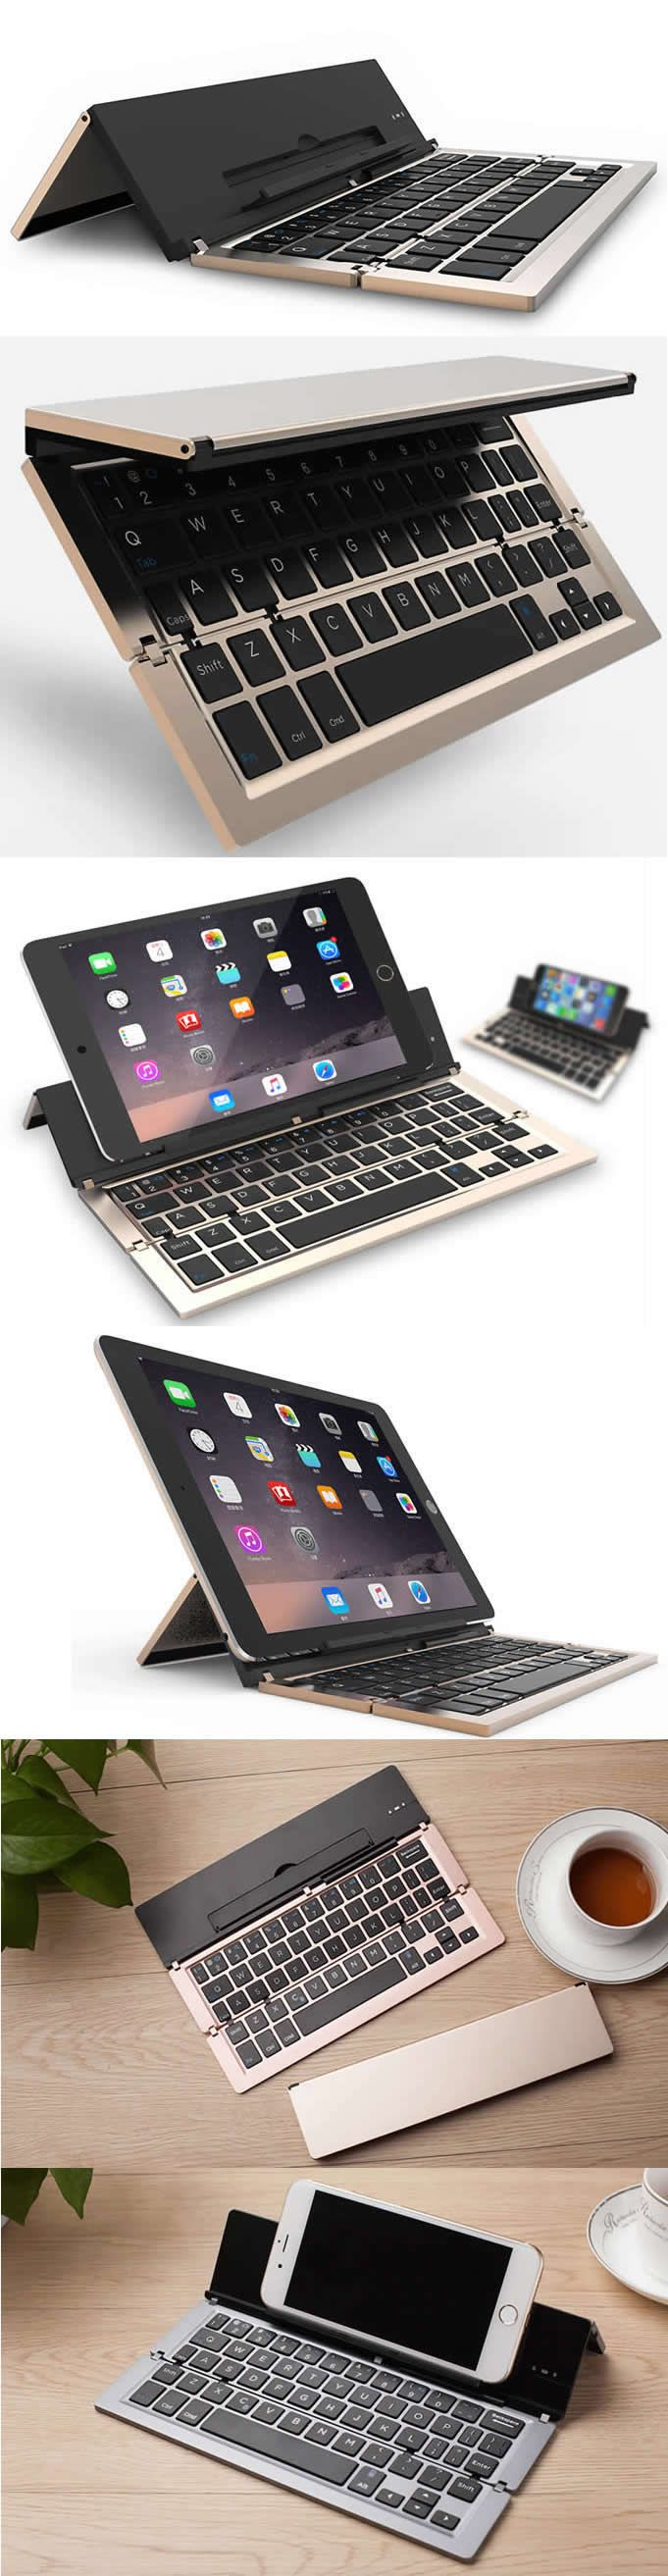 Universal iPad iPhone Bluetooth Folding Keyboard for Smartphones and Tablets